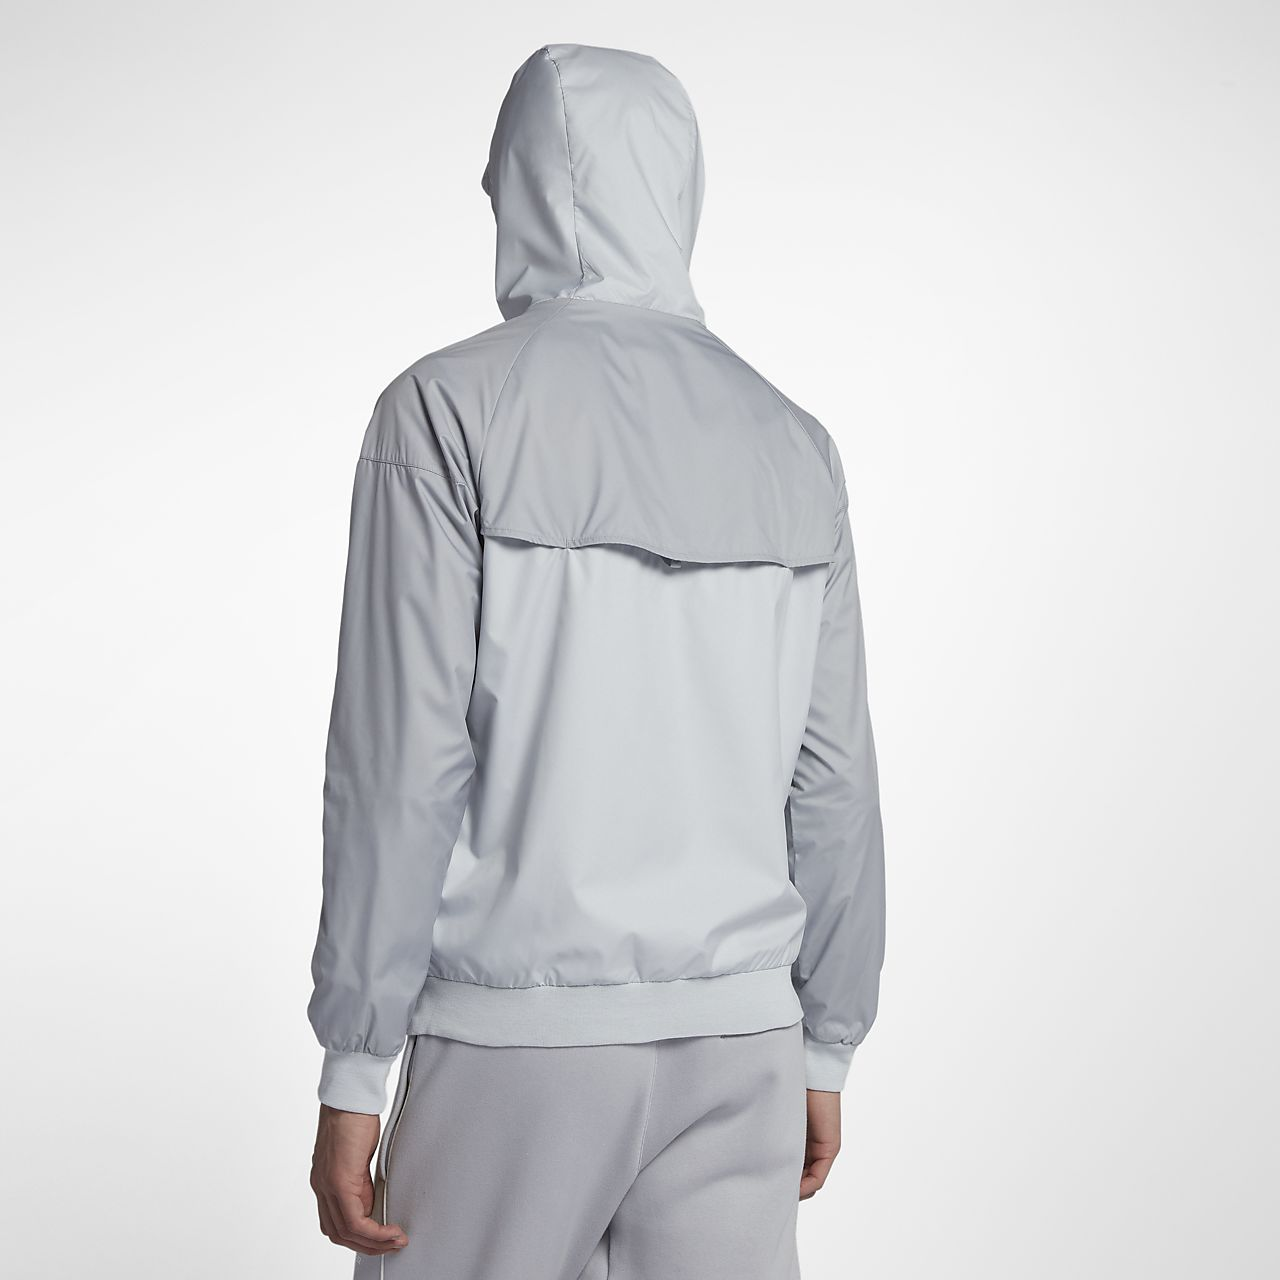 dff0e0036d4b Low Resolution Nike Sportswear Windrunner Men s Jacket Nike Sportswear Windrunner  Men s Jacket